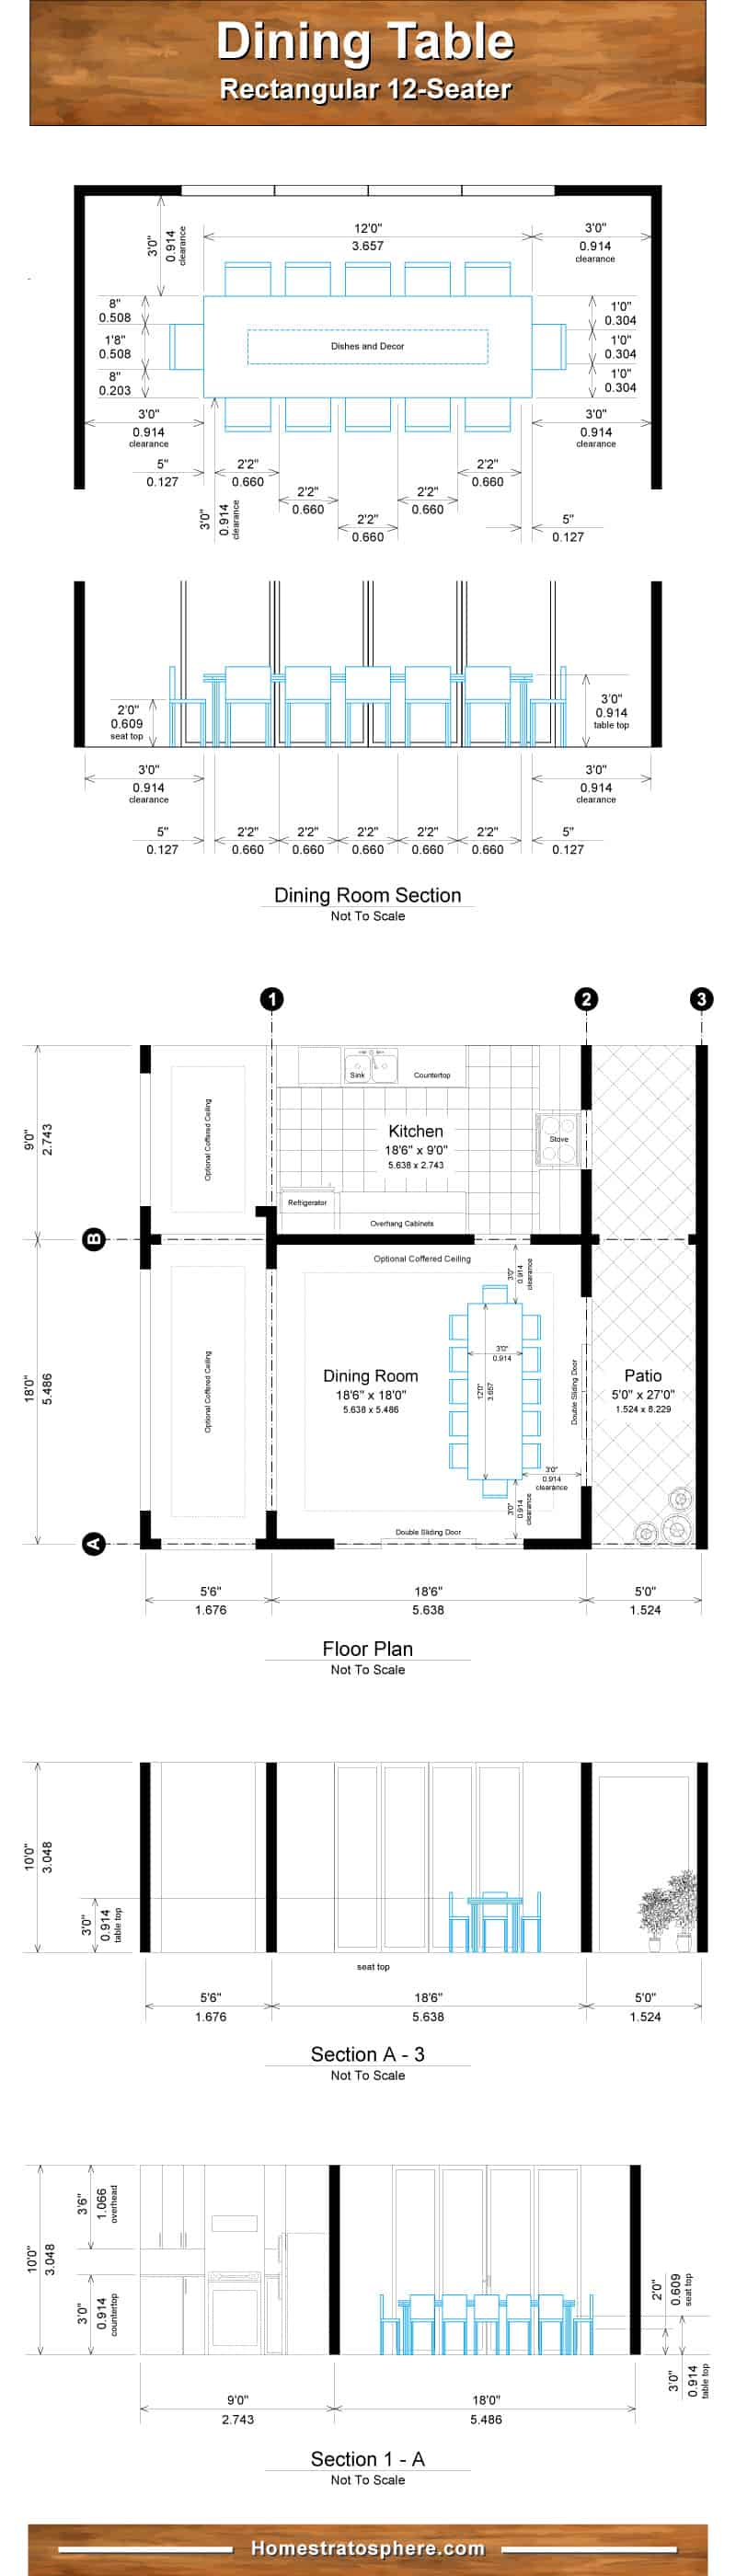 Chart diagram of dining room and table dimensions for 12 people.